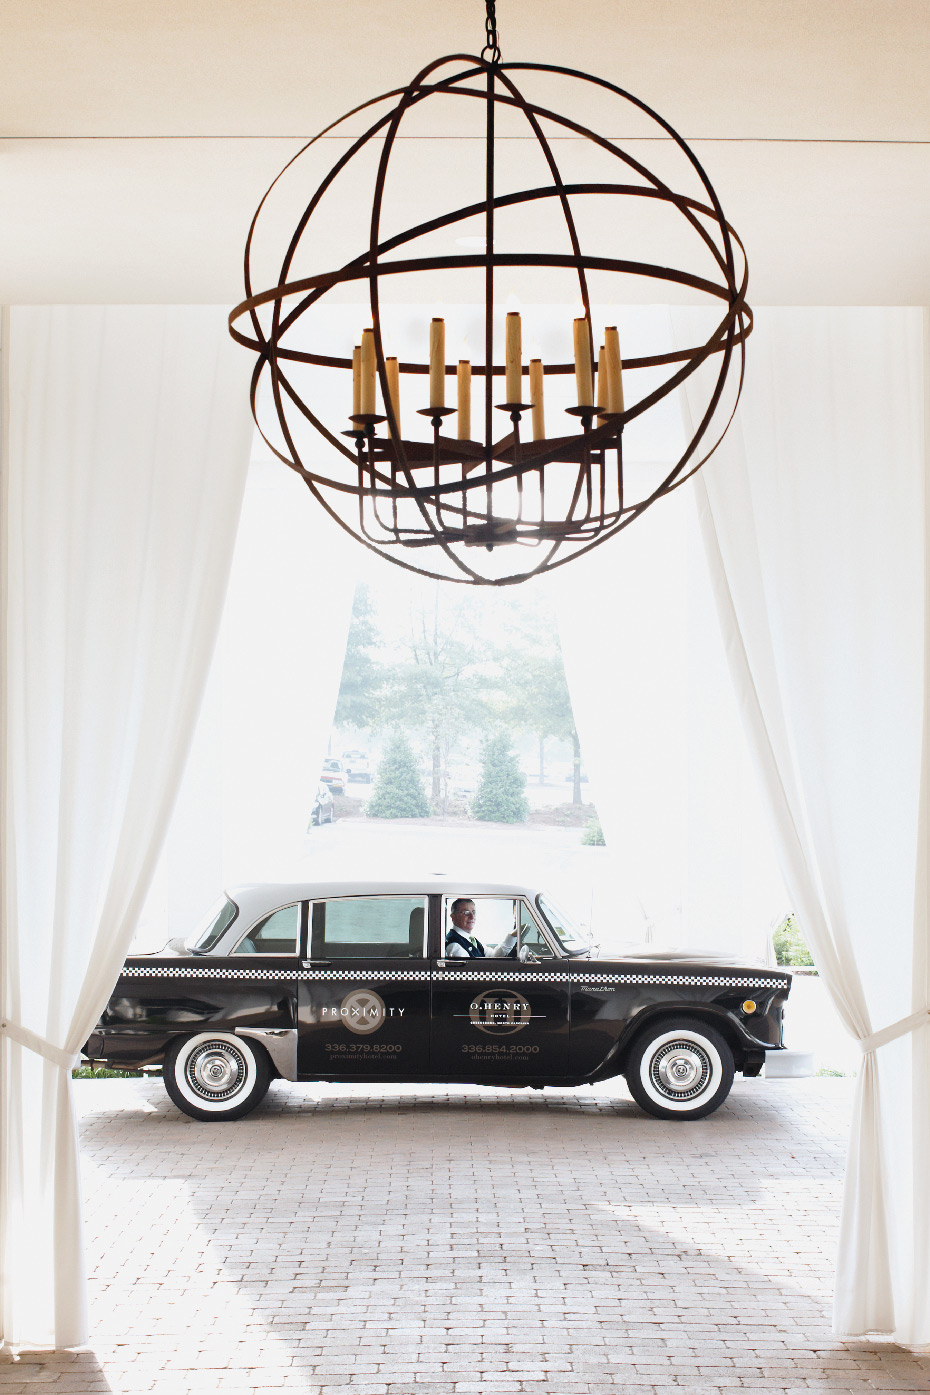 Stacey Van Berkel Photography I Black London cab at the Proximity Hotel I Greensboro, North Carolina